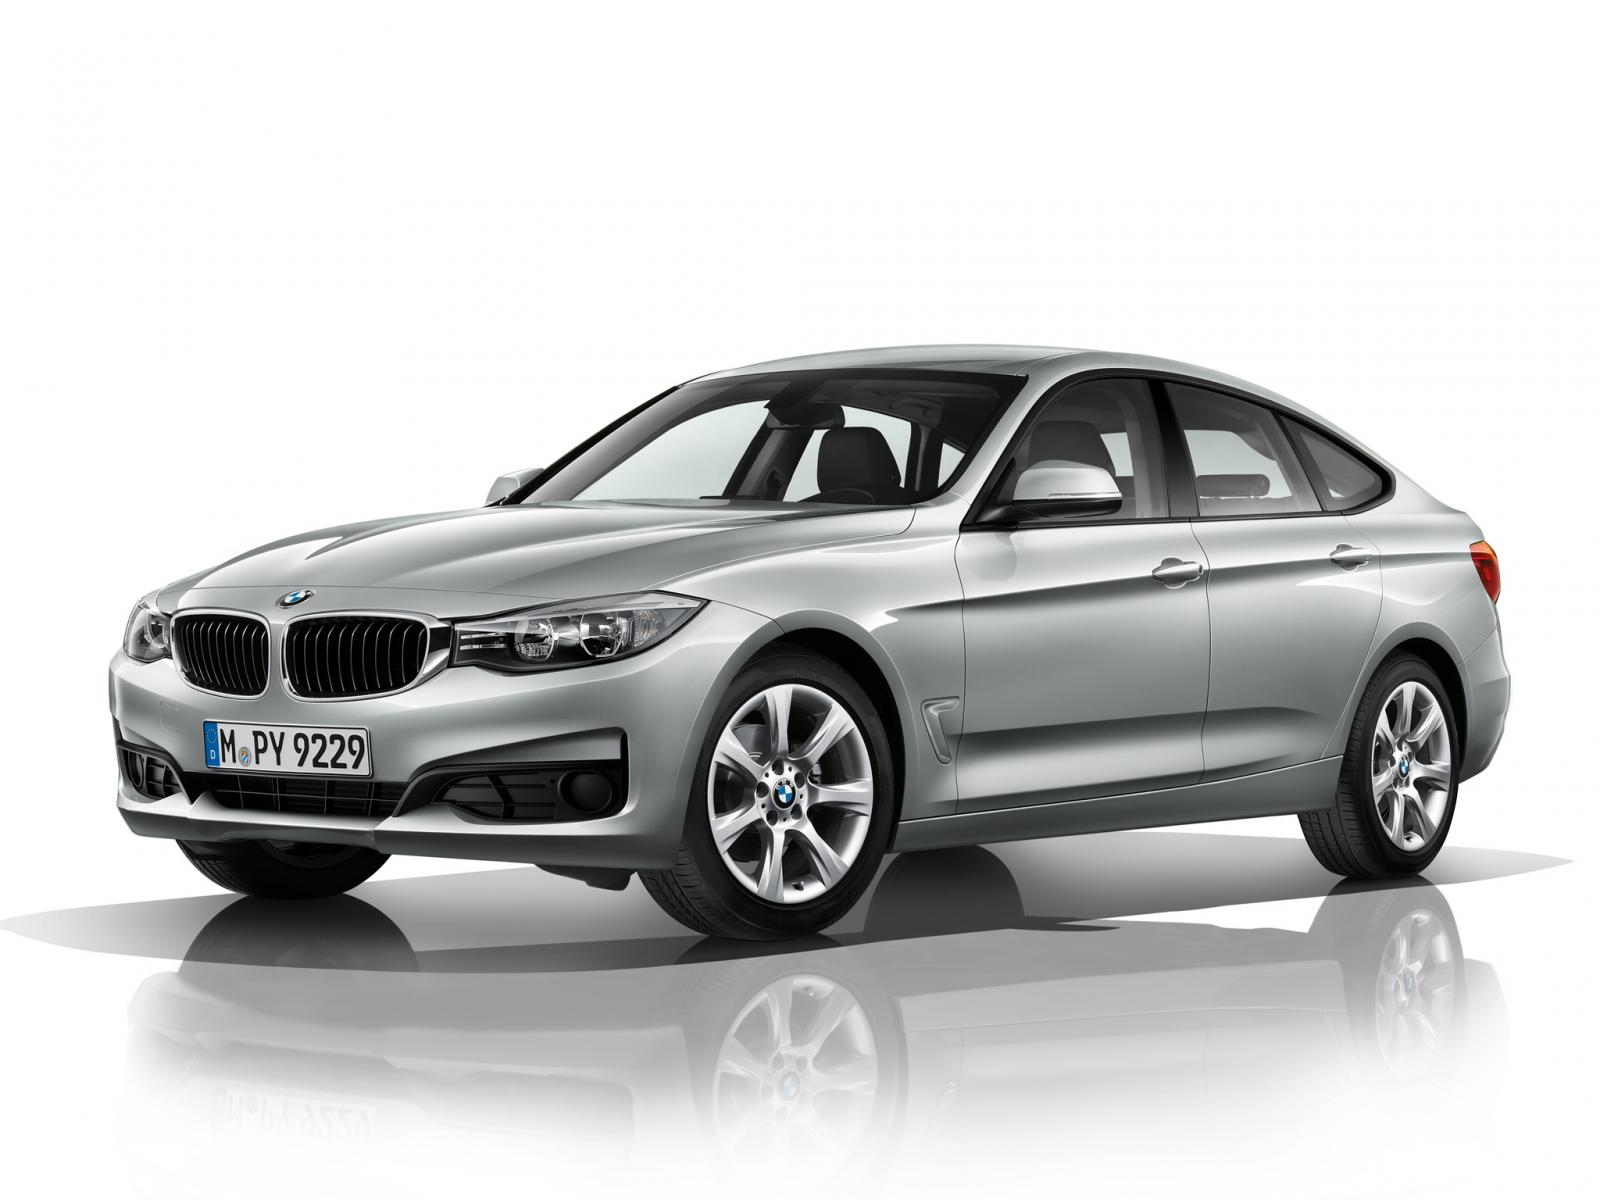 Bmw 2013 F34 3 Series Gt Official Photos Leaked Autoevolution